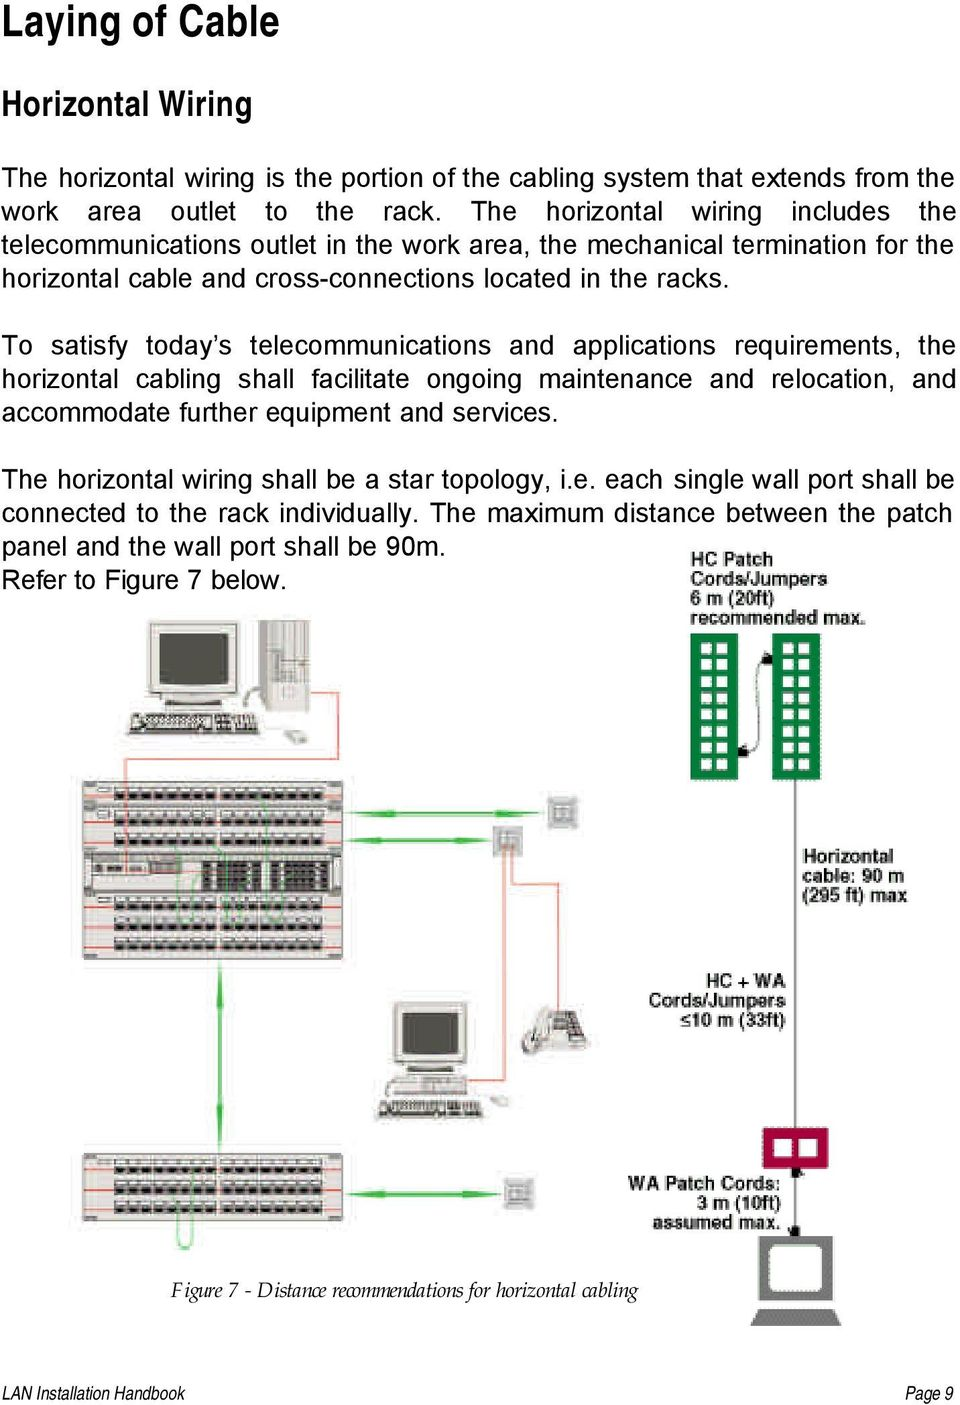 Lan Installation Handbook Pdf Ethernet Plug Wiring Arrange Wires Per Eiatia T568b To Satisfy Today S Telecommunications And Applications Requirements The Horizontal Cabling Shall Facilitate Ongoing Maintenance